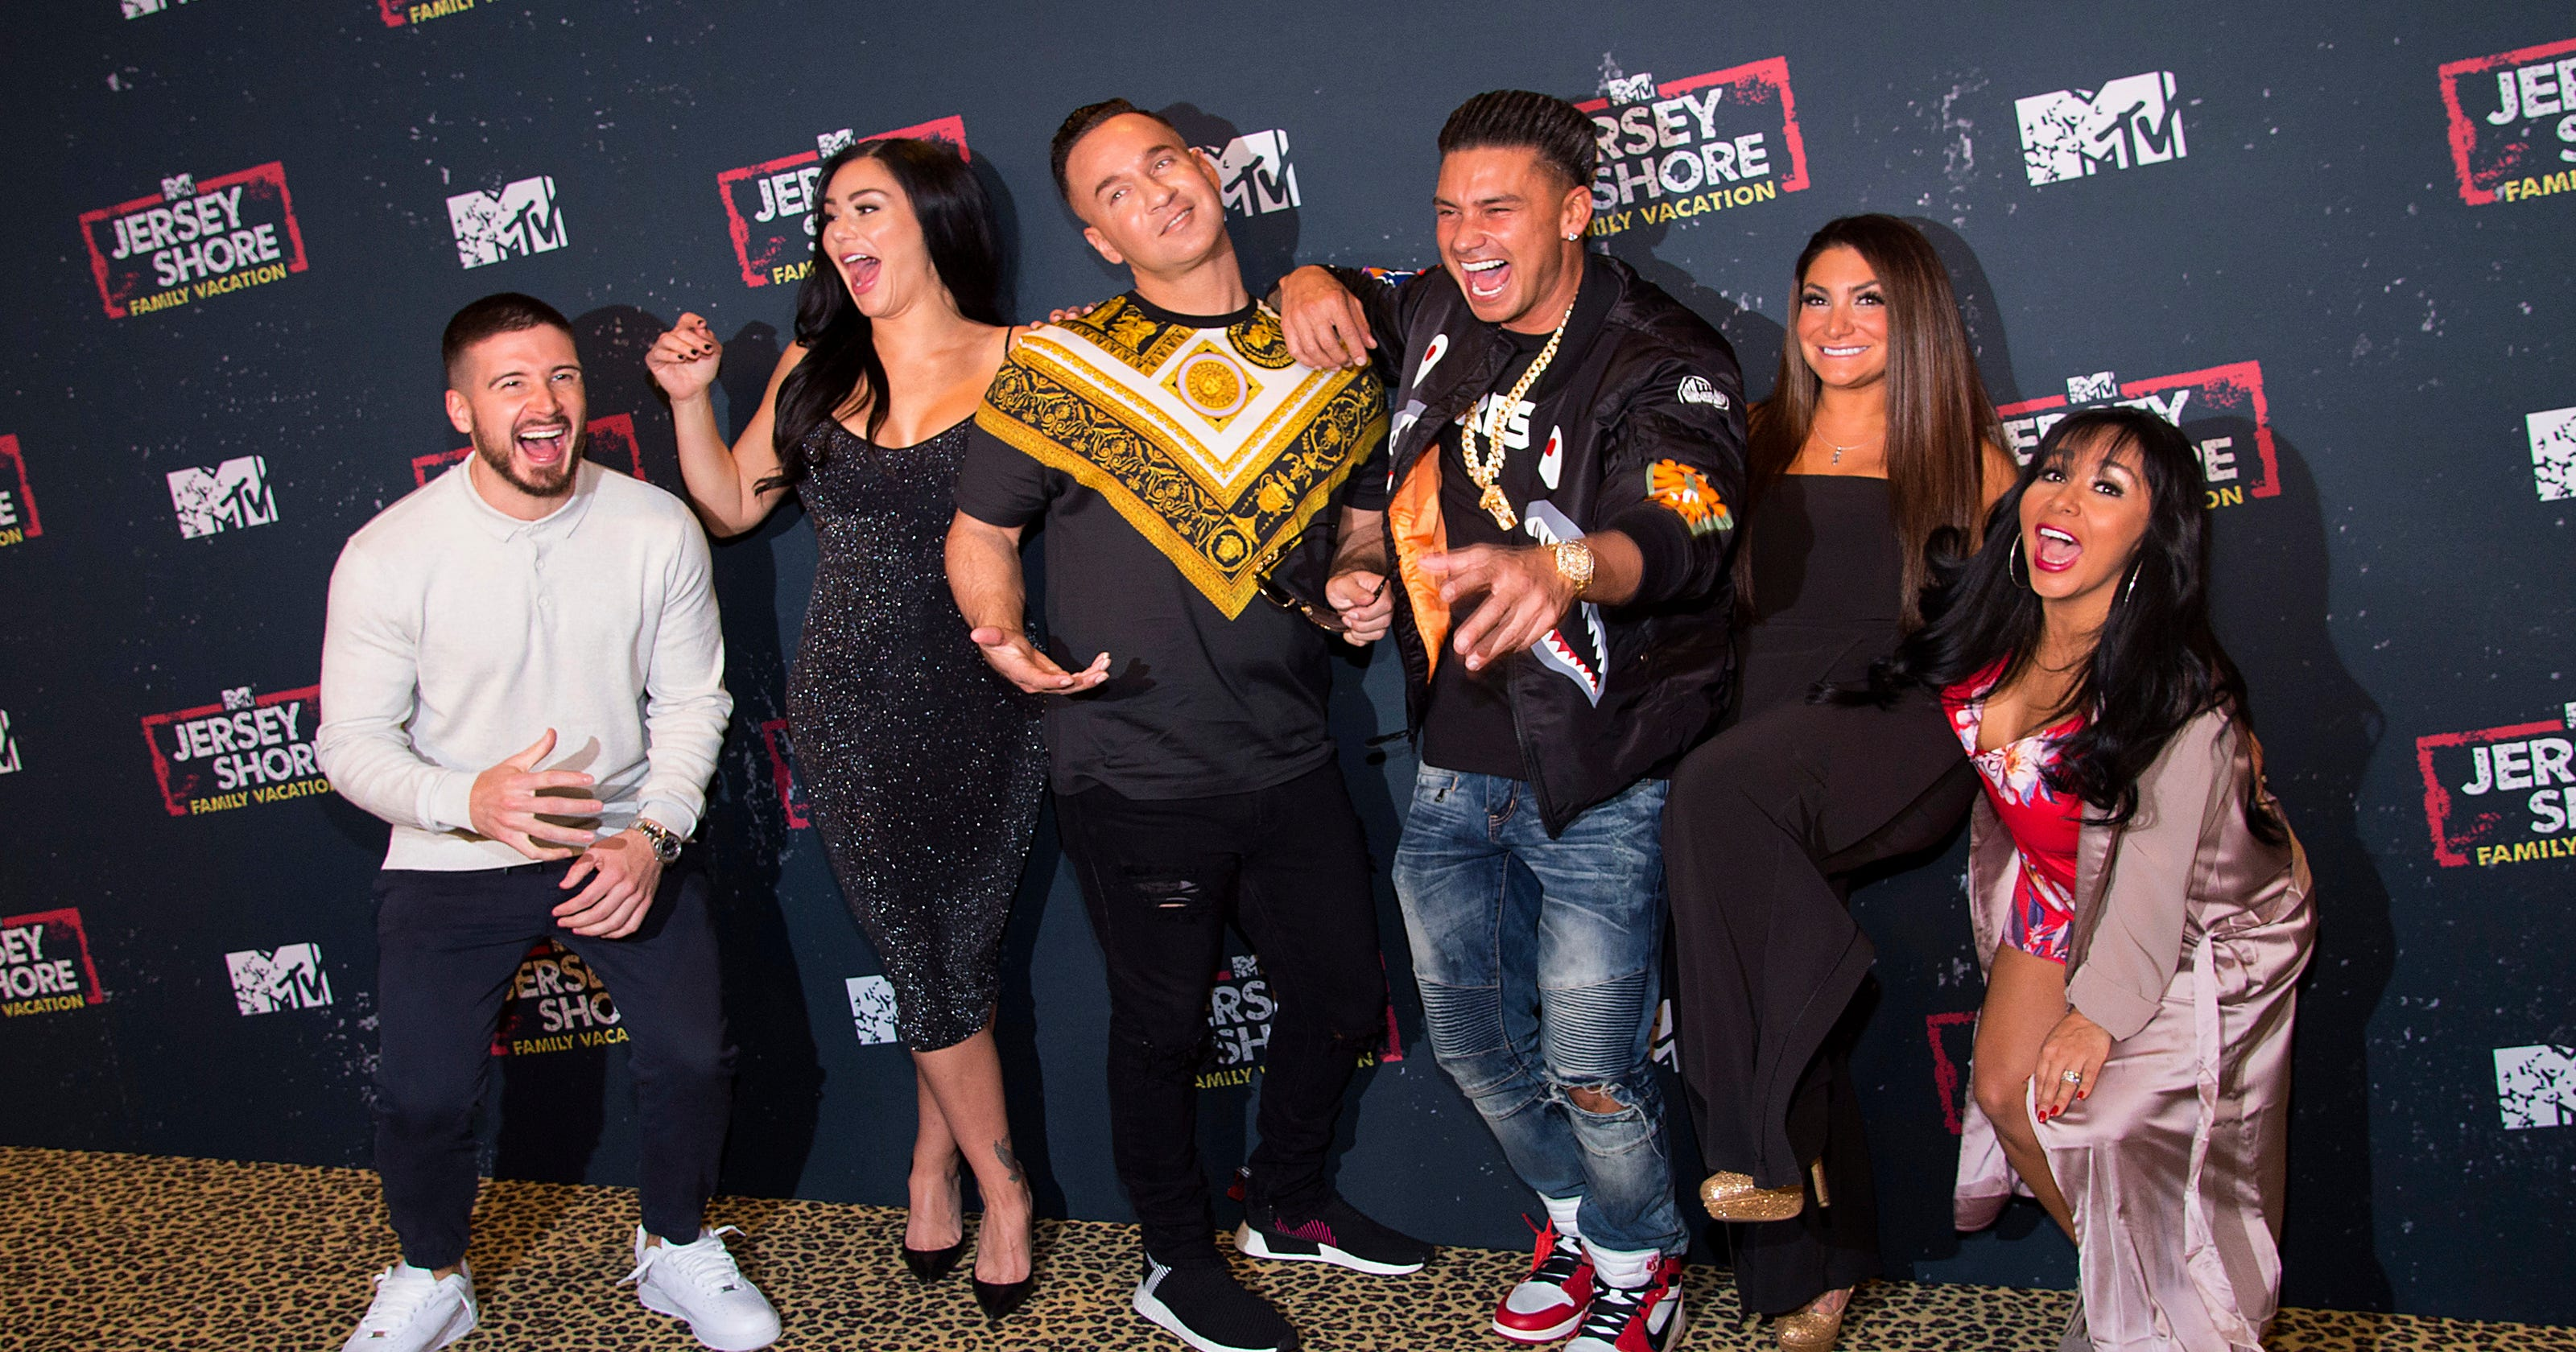 jersey shore family vacation s01e05 online